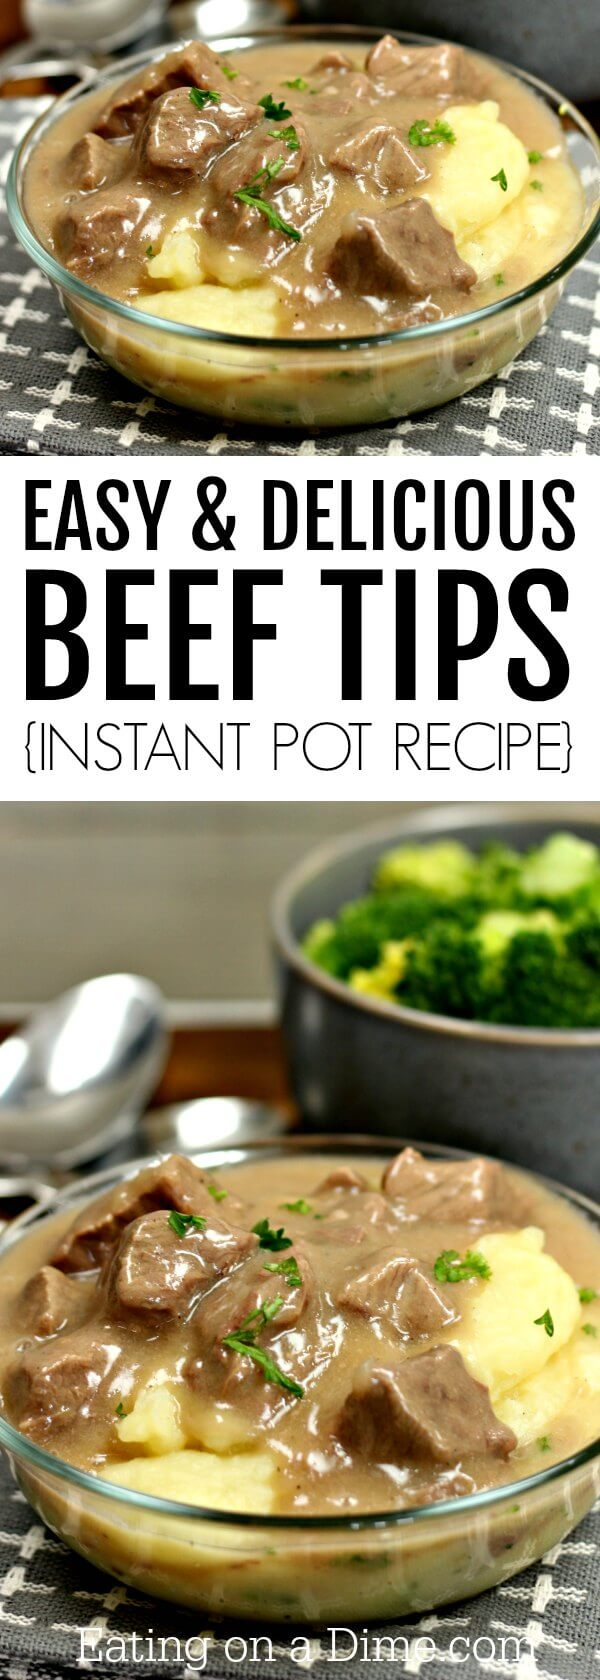 This tender sirloin beef tips recipe is amazing! You will love this Instant Pot Beef Tips and Gravy recipe. Try beef tips over rice or mashed potatoes or noodles! It's absolutely delicious either way. Plus, this recipe is so quick and easy.